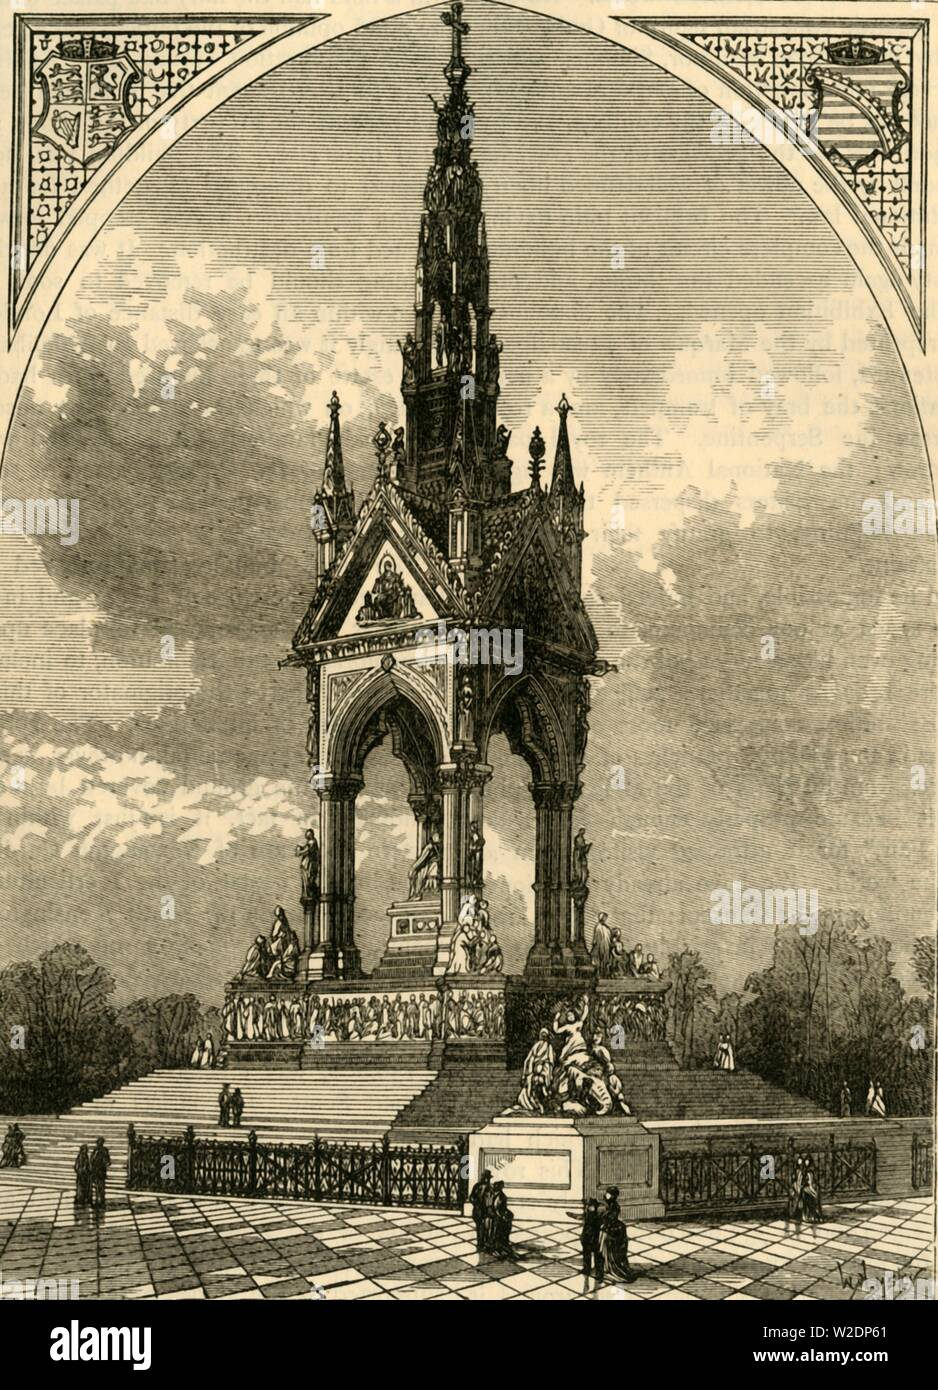 """'The Albert Memorial', c1876. The Albert Memorial  in Kensington Gardens, designed by Sir George Gilbert Scott in Gothic Revival style was commissioned by Queen Victoria in memory of her husband Prince Albert, who died in 1861 and is Grade I listed. From """"Old and New London: A Narrative of Its History, Its People, and Its Places. The Western and Northern Studies"""", by Edward Walford. [Cassell, Petter, Galpin & Co., London, Paris & New York] - Stock Image"""